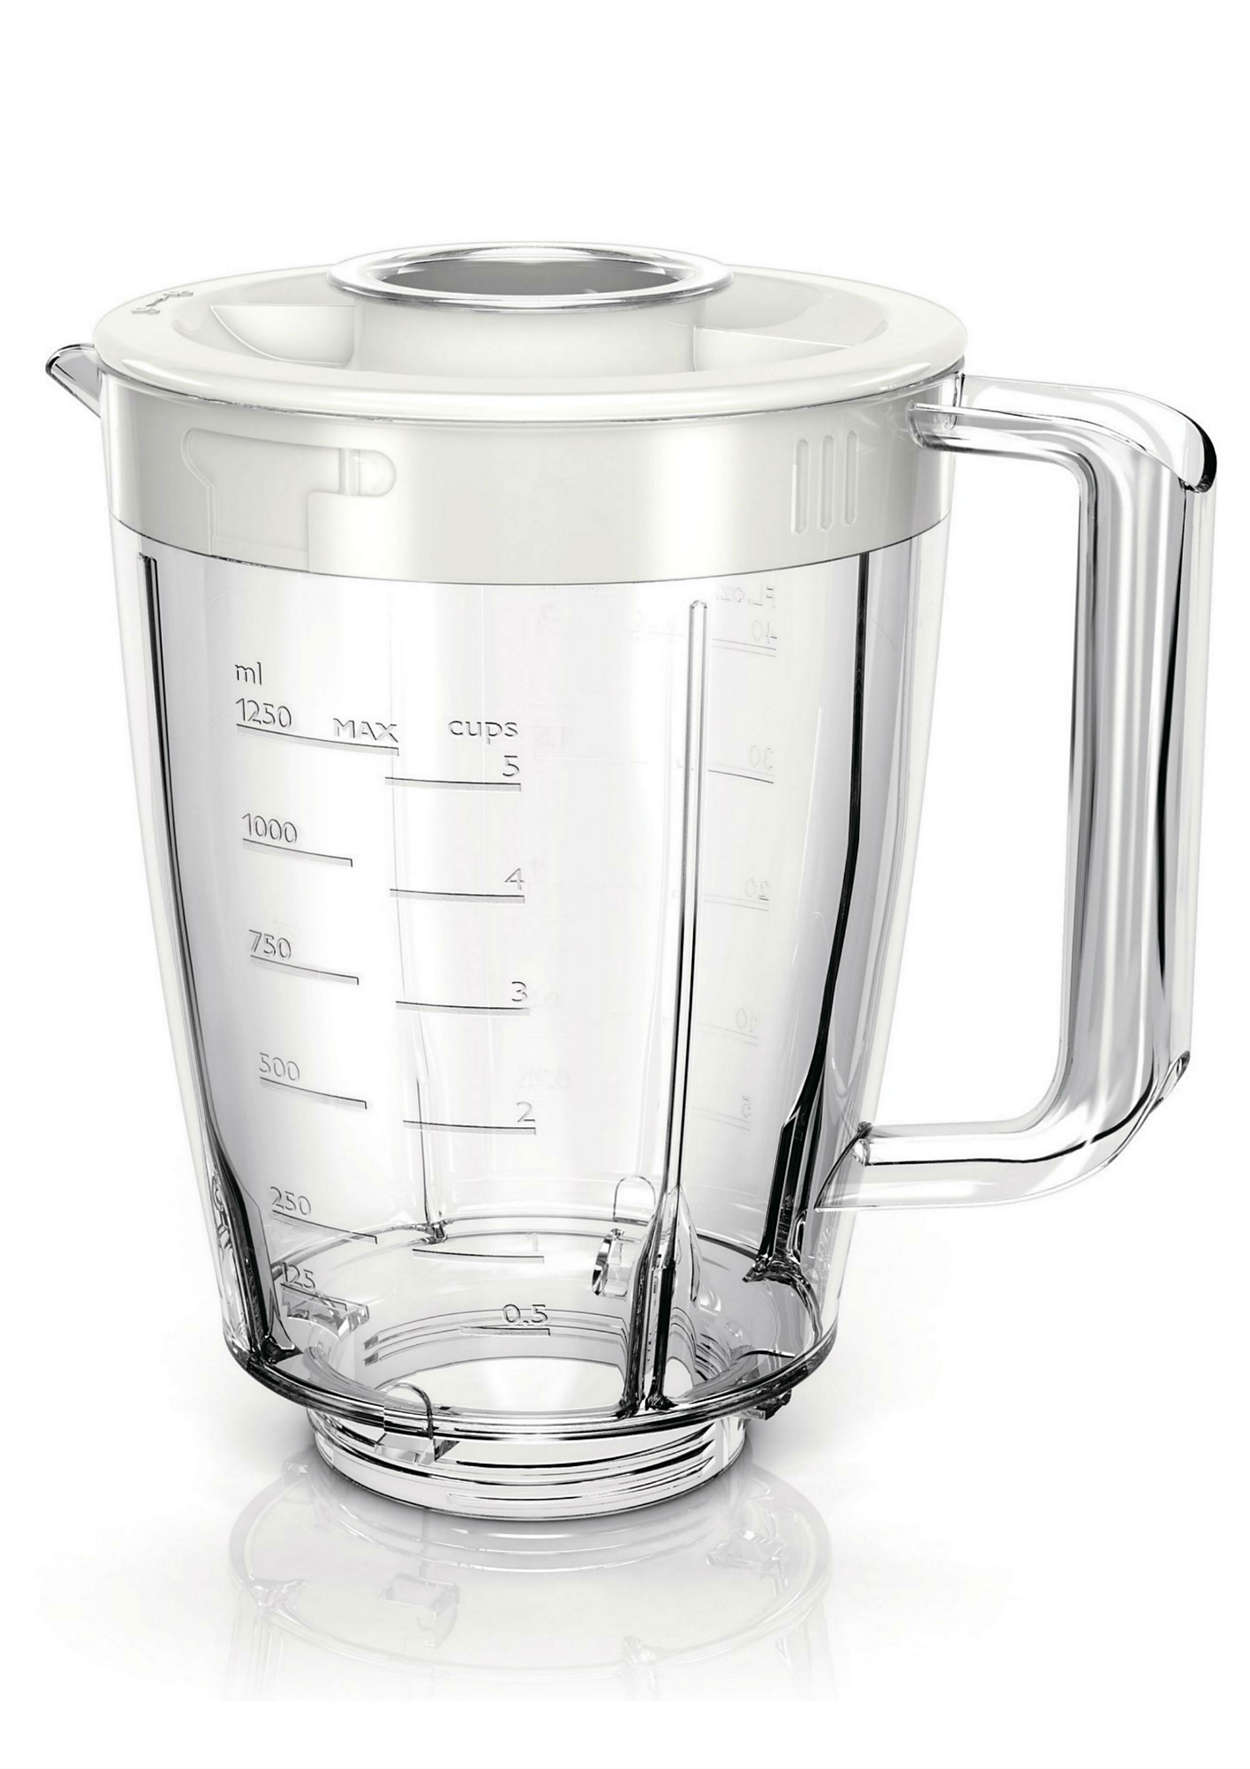 Extra jar that complements perfectly your blender